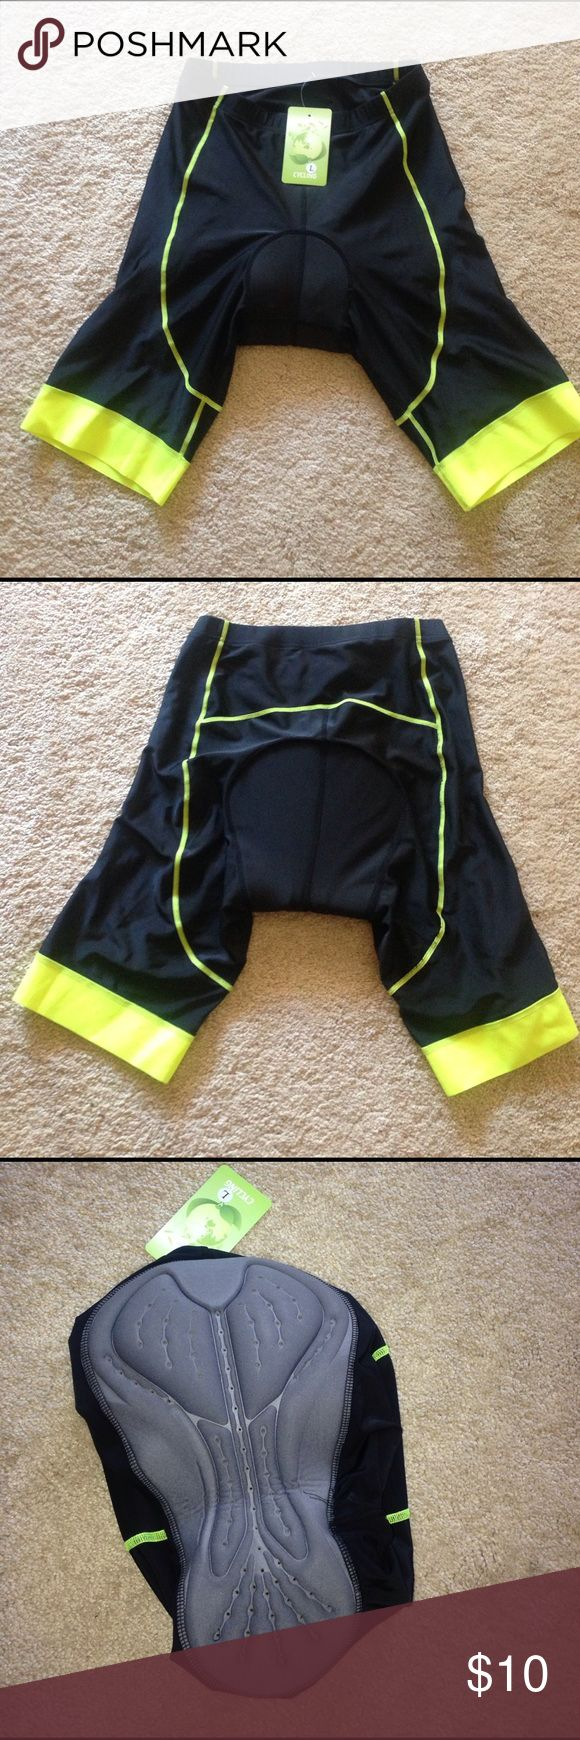 New!! Padded cycling shorts New men's padded cycling shorts from China. Ordered from EBay. Other